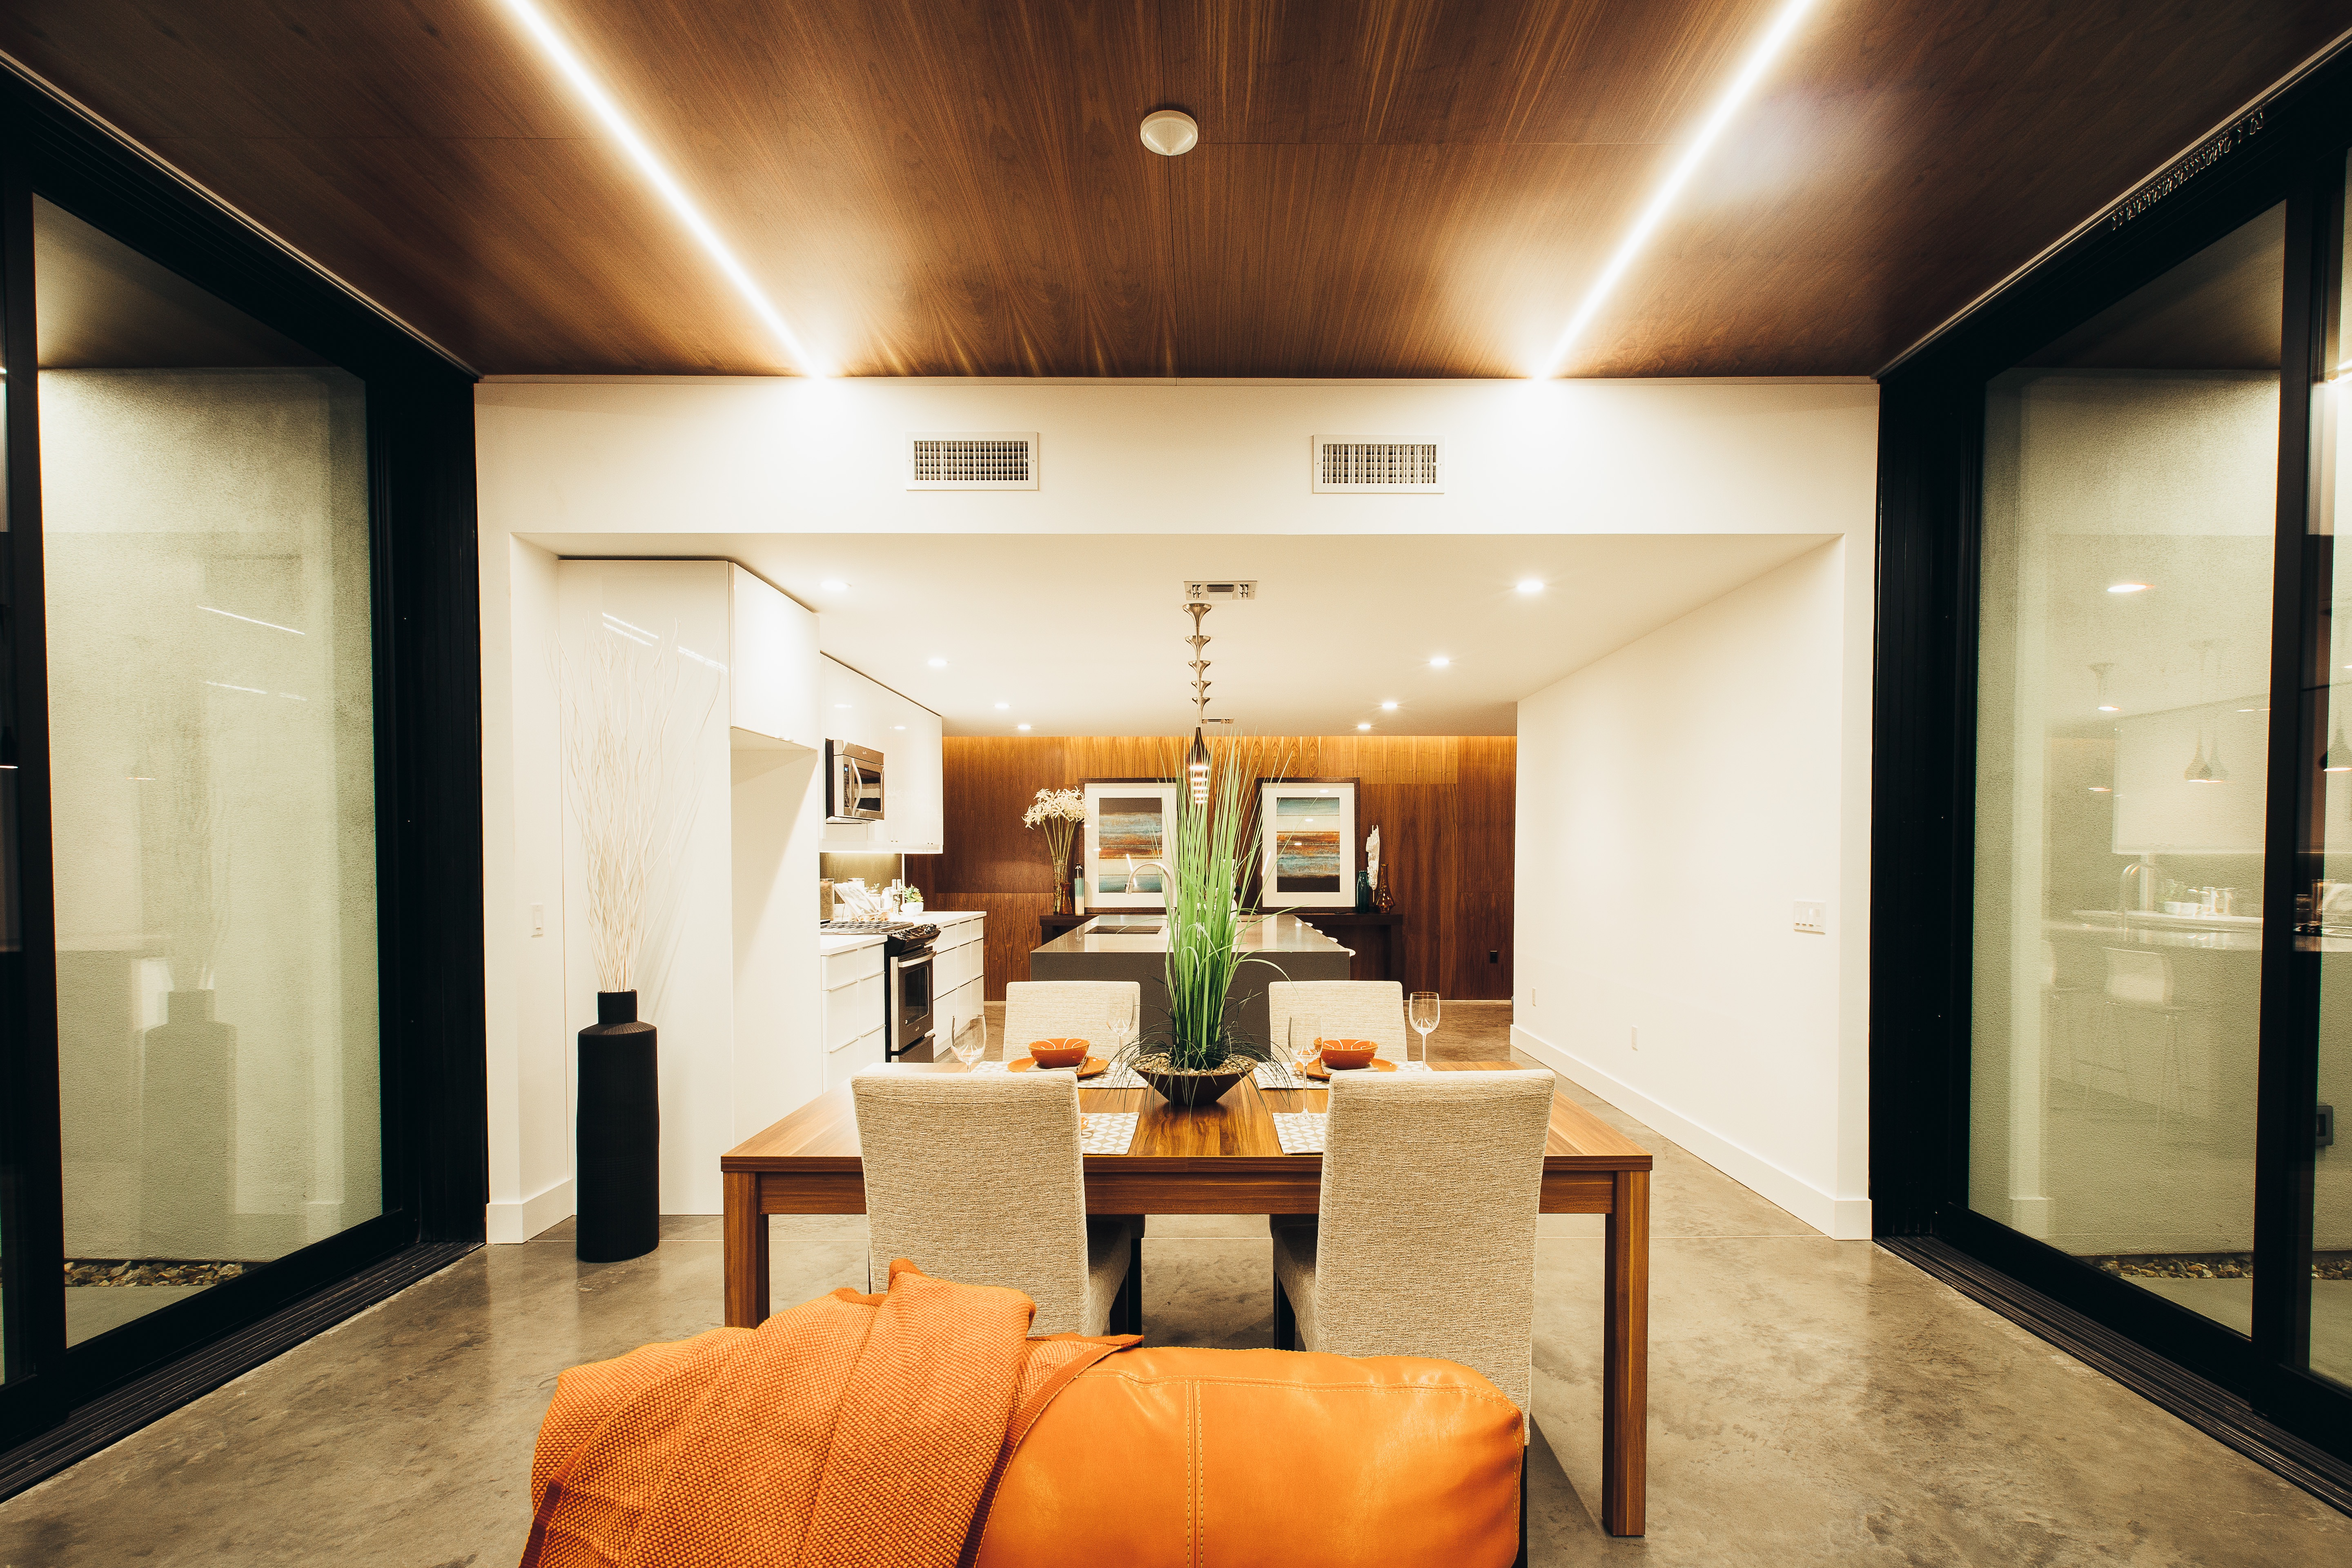 Modern Wood Ceiling With Warm LED Lighting (View 20 of 31)